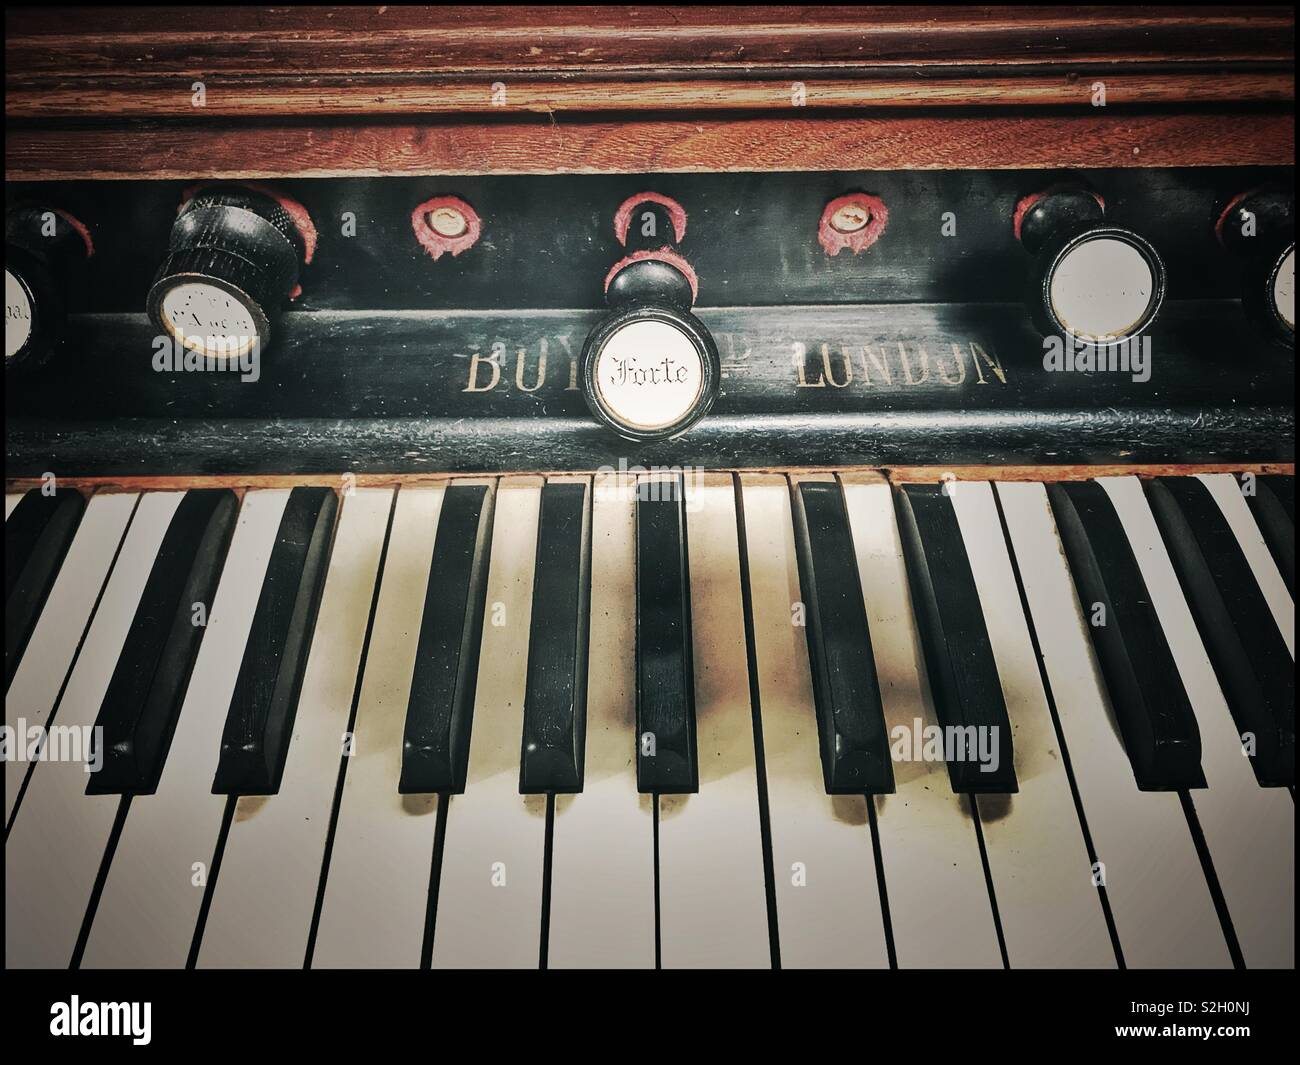 Stop faces on antique pump organ at Toeka Stoor, South Africa. - Stock Image